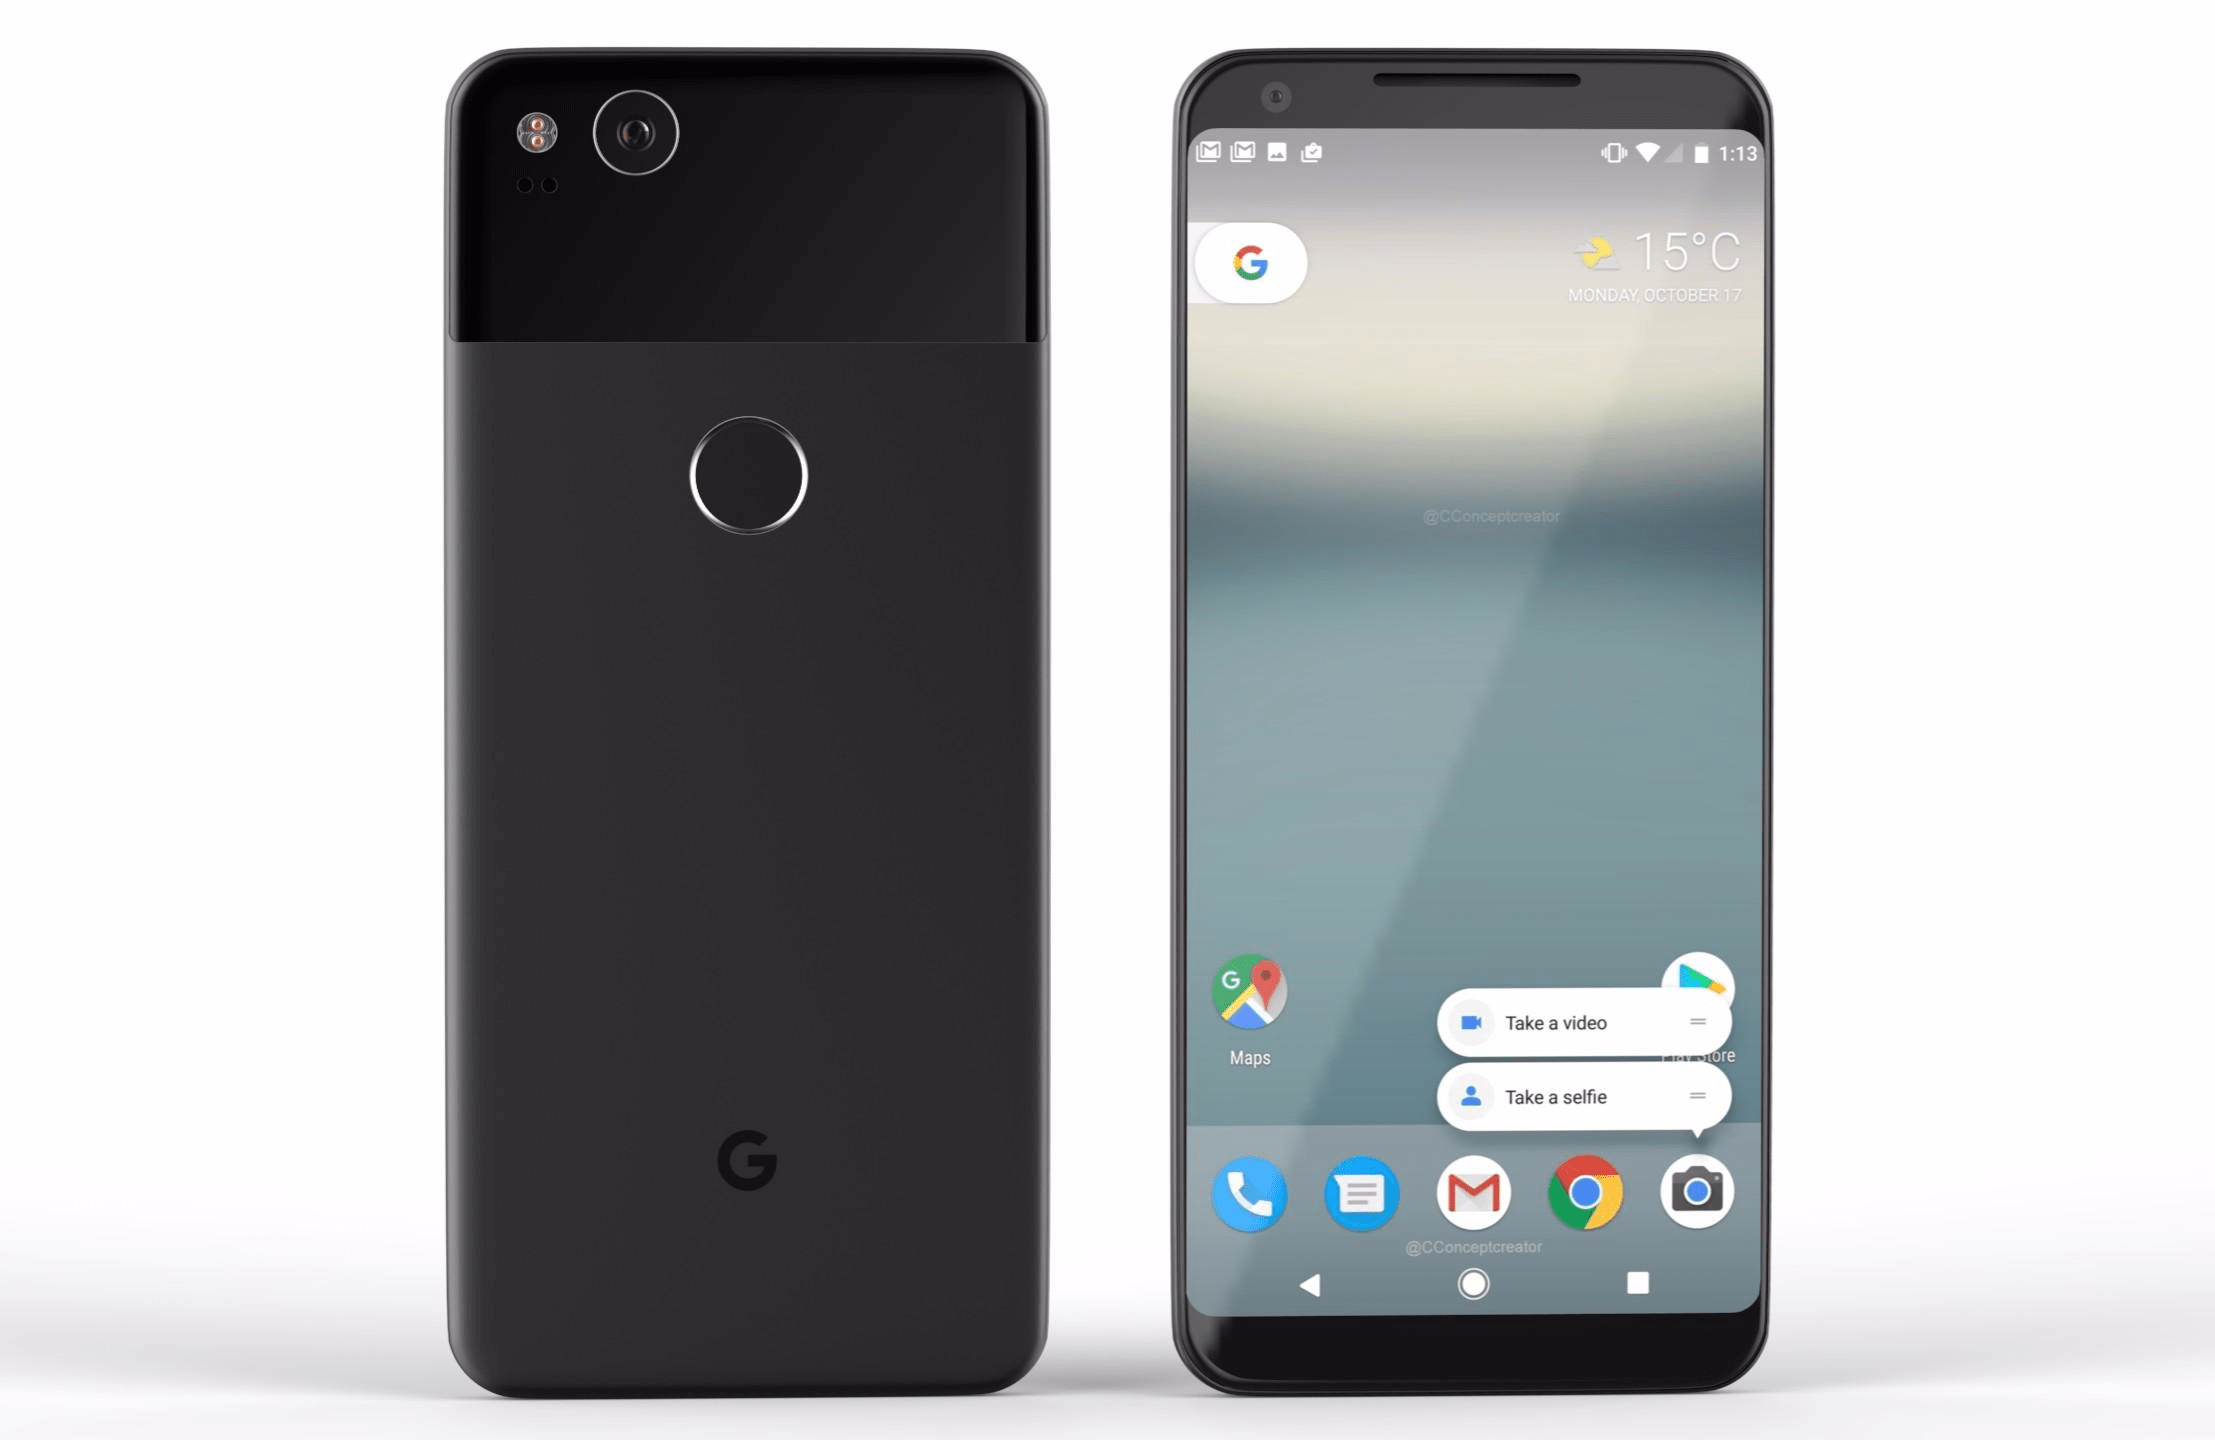 Google Pixel 2 - Full Specifications leaked